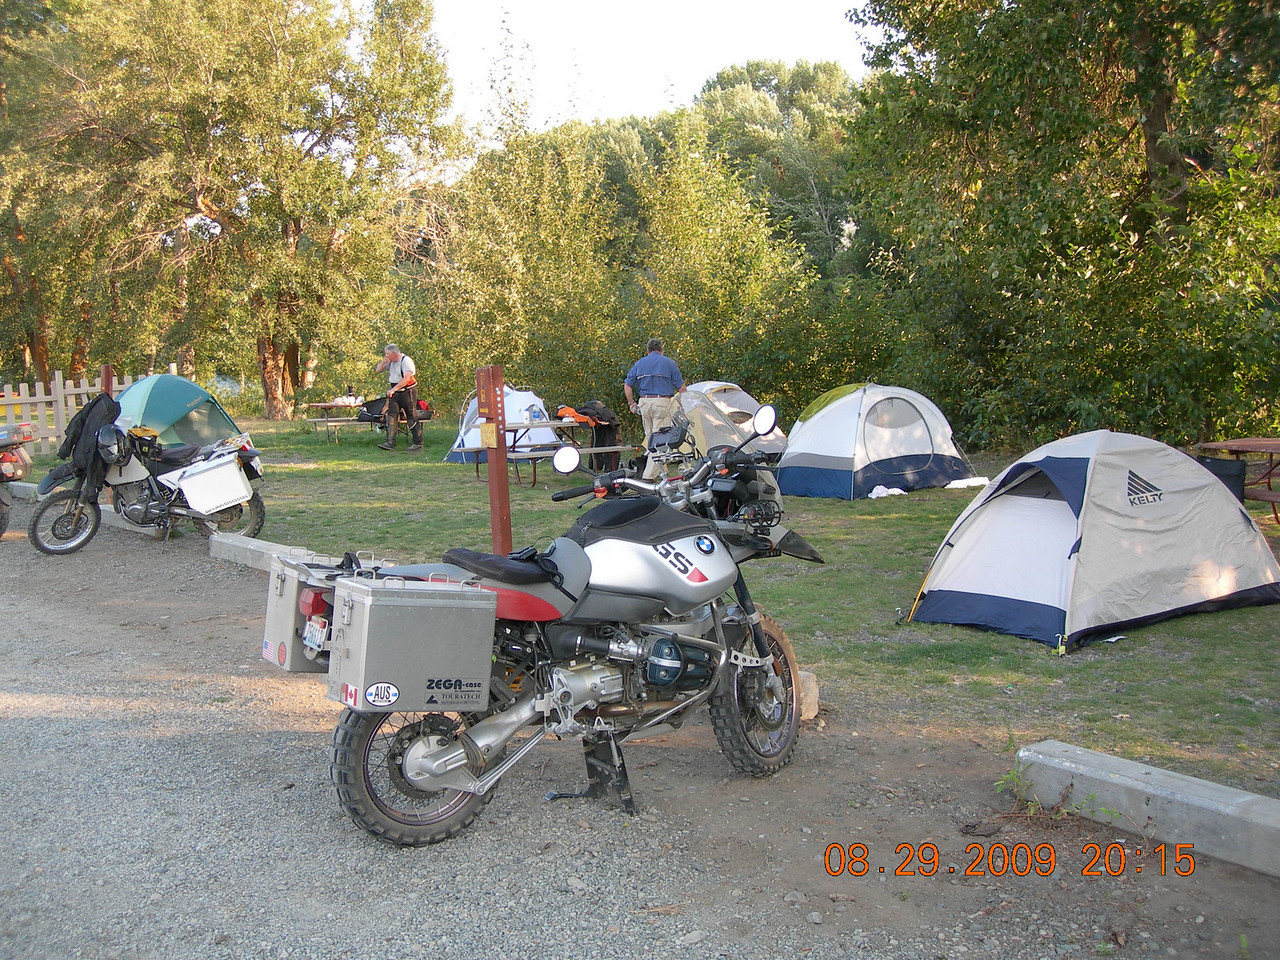 Camp for the night on Day 2 was the Ellensburg K.O.A. which turned out to be a beautiful spot.